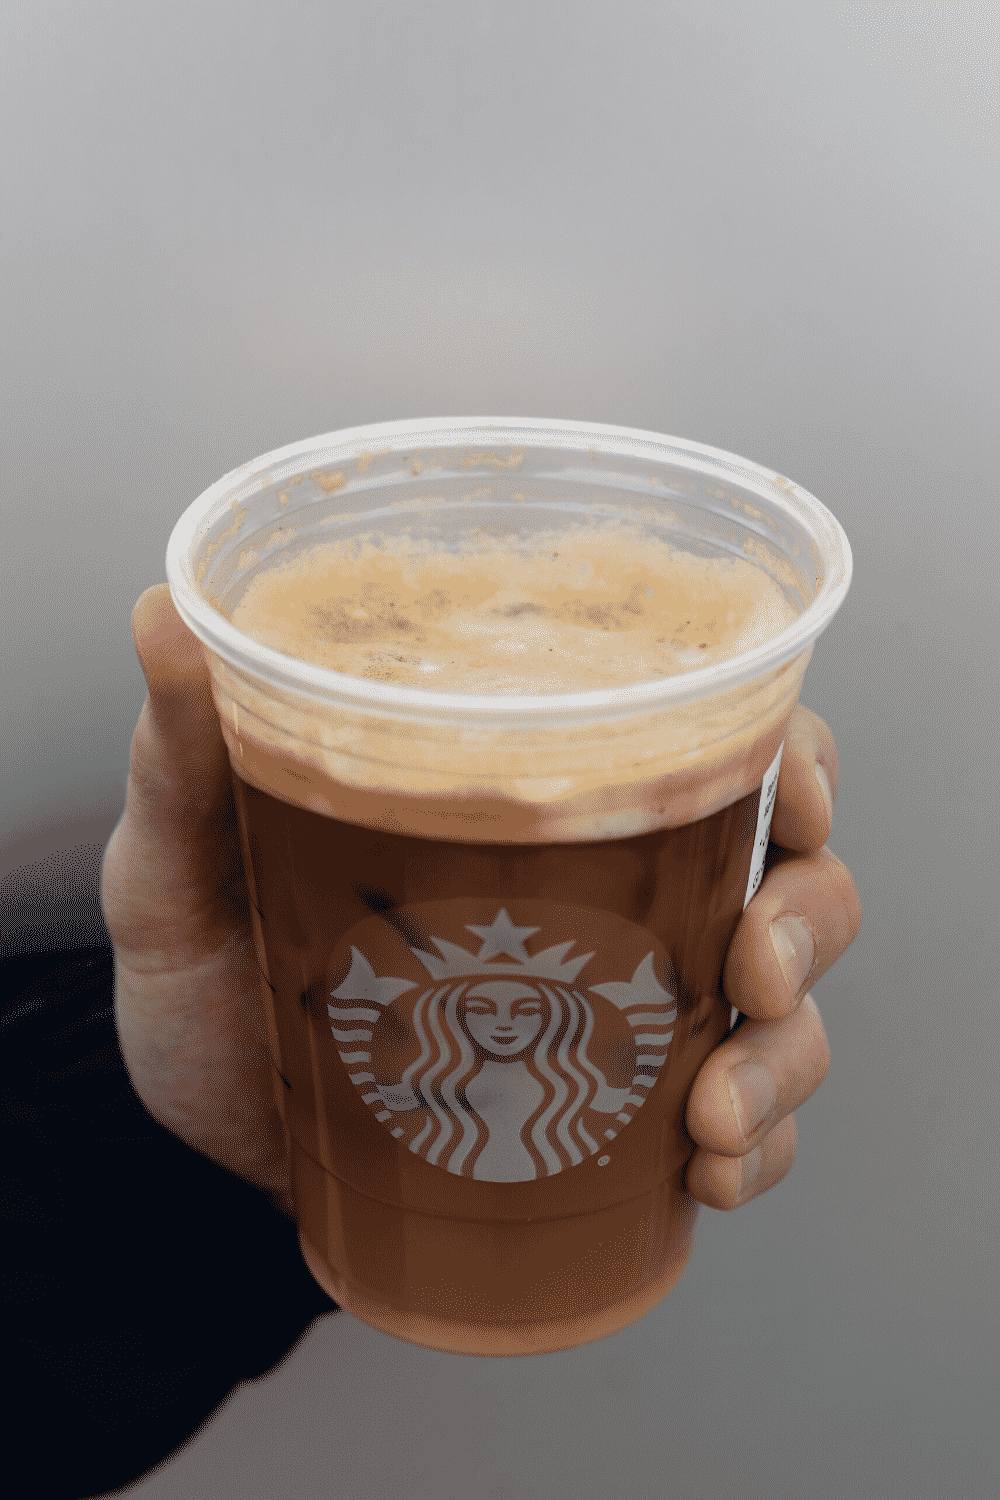 A hand holding a cup of Starbucks vegan iced shaken espresso.